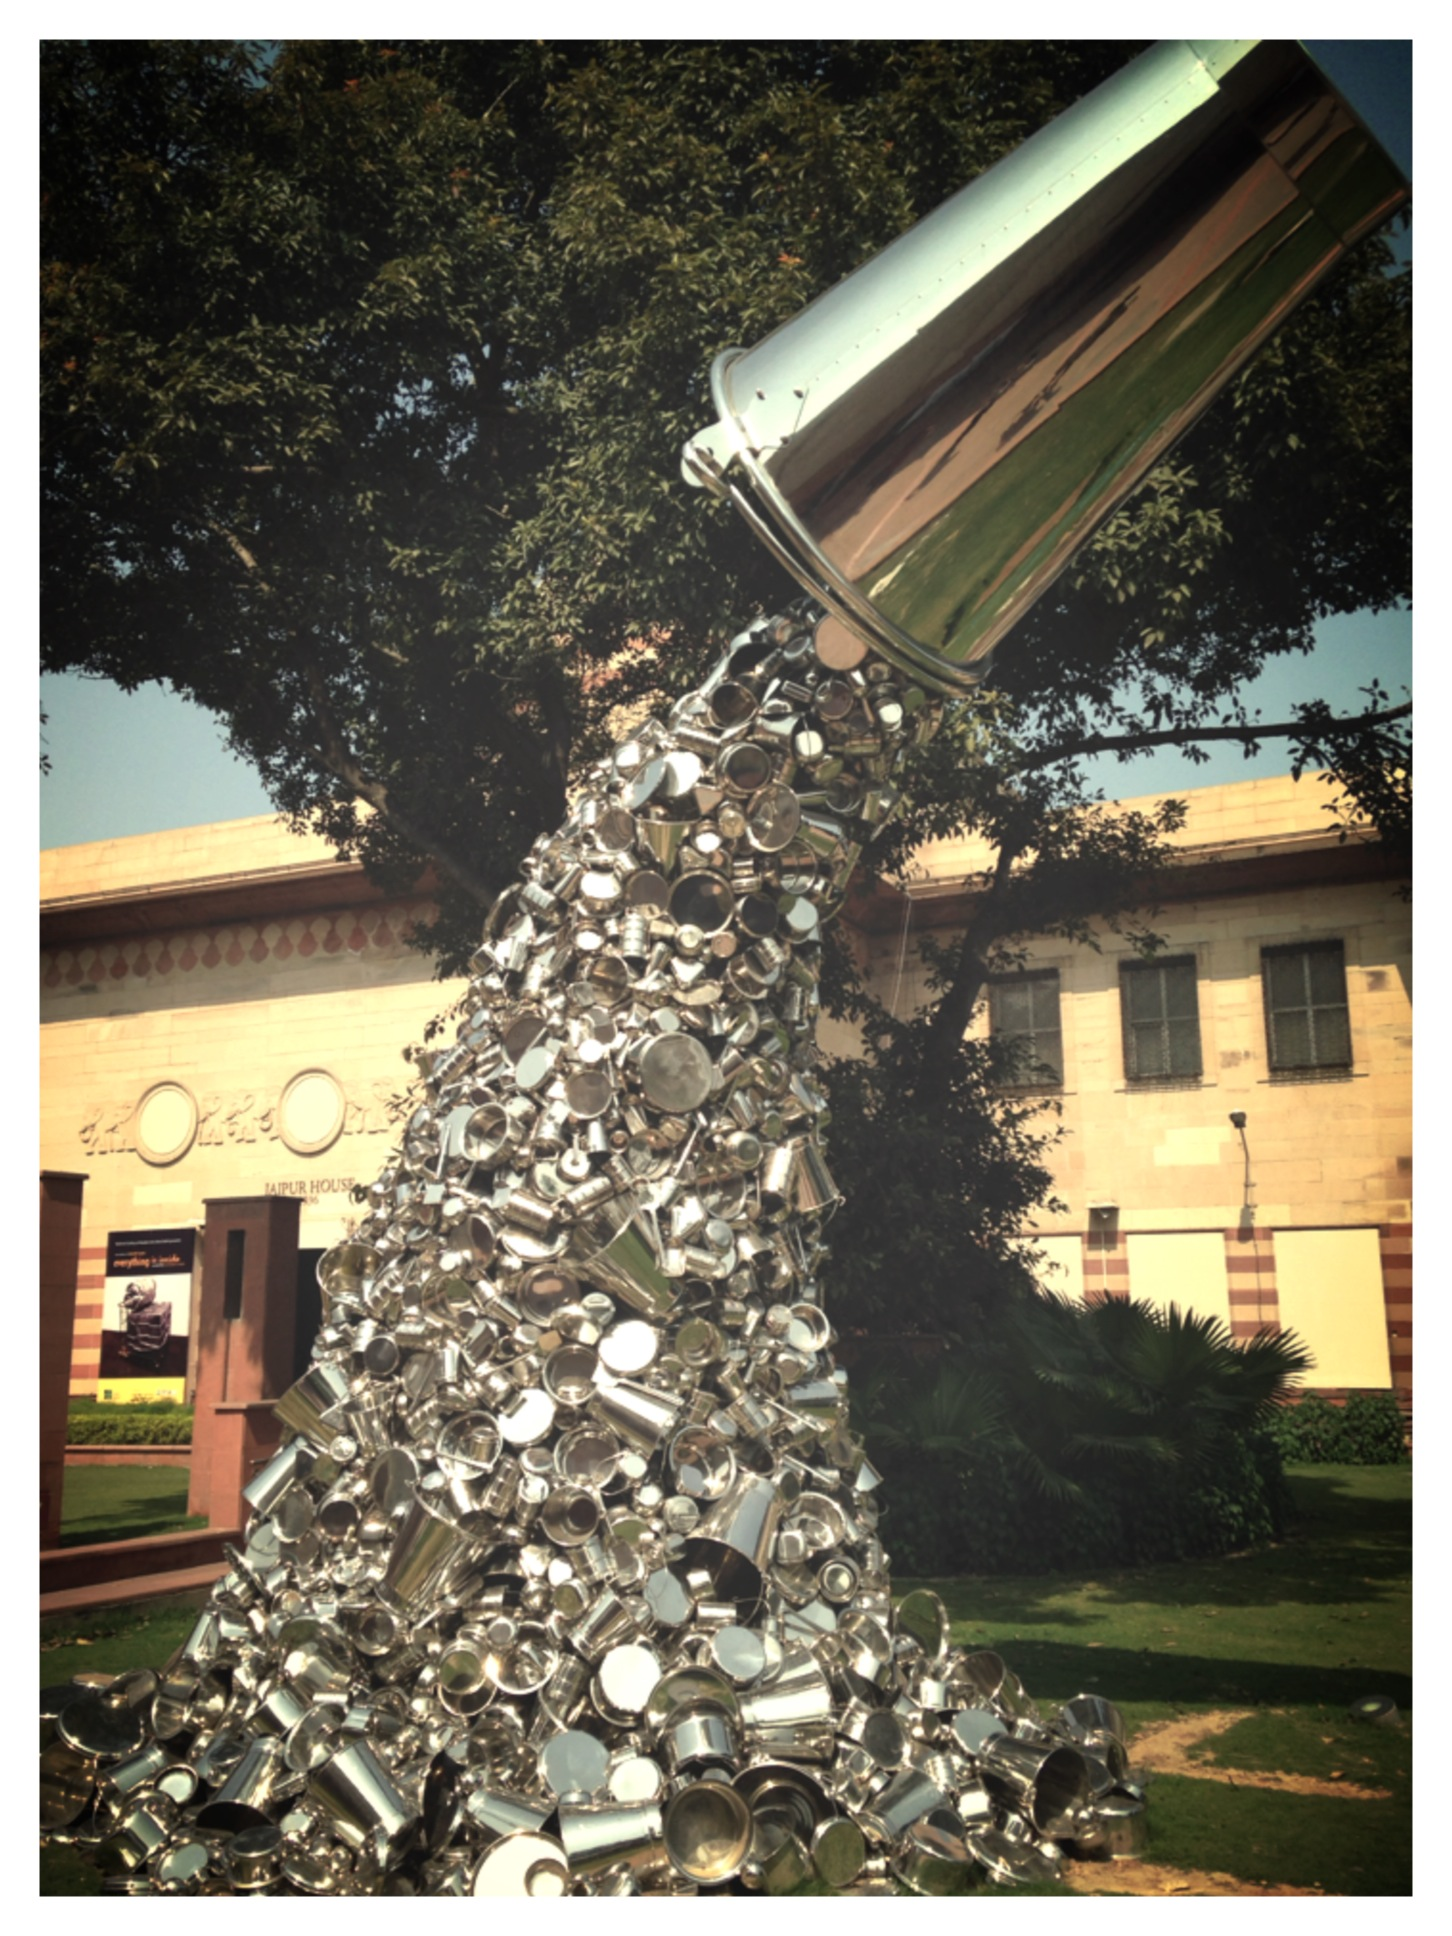 Artist Subodh Gupta's Work with Steel Utensils, Seen here at the National Gallery of Modern Art, New Delhi.